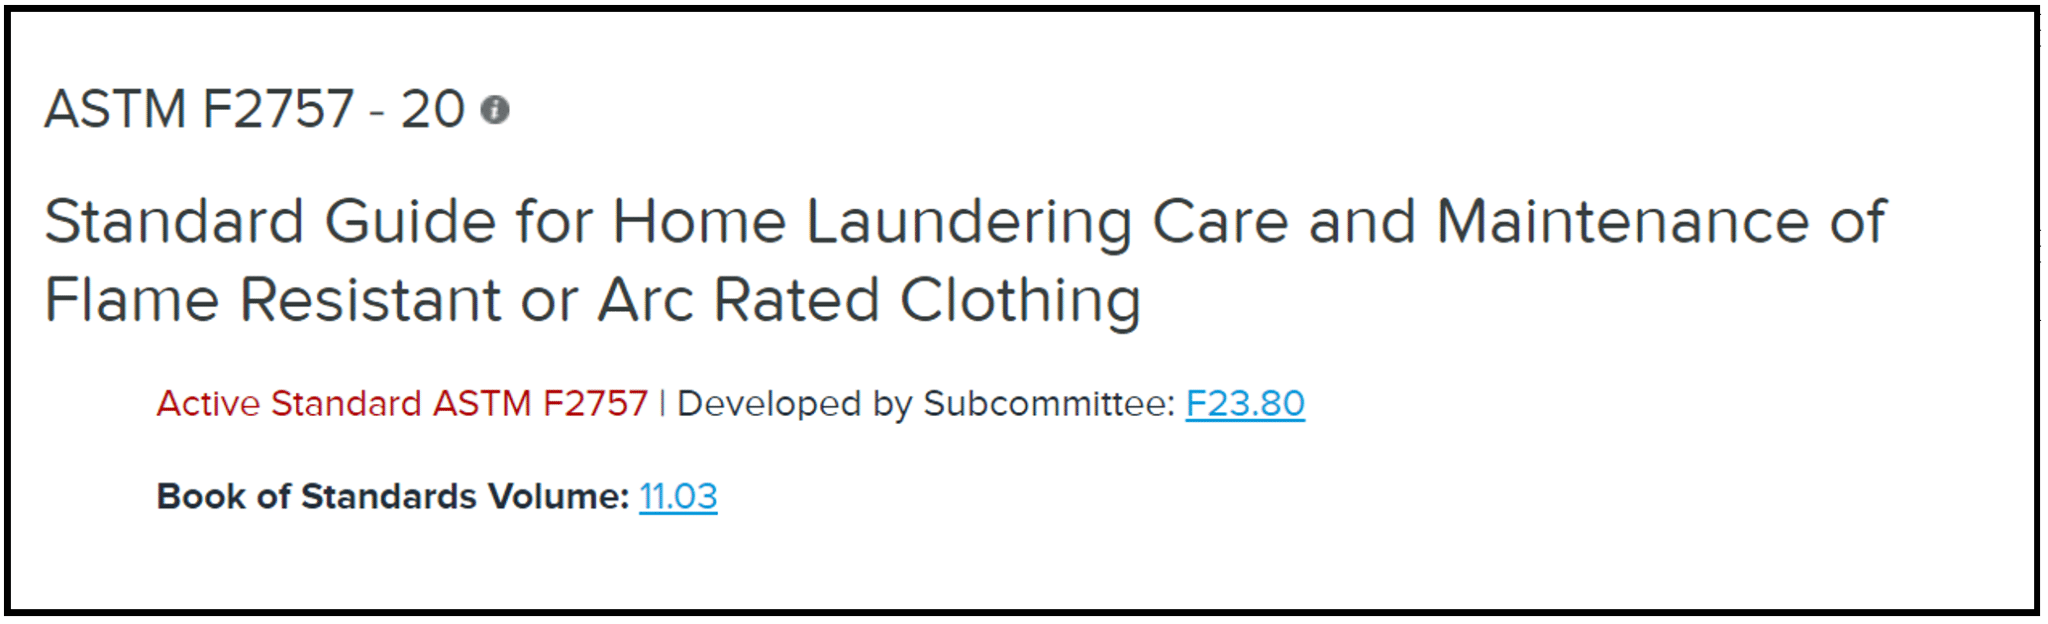 ASTM Updates Home Laundering Standard for AR and FR Clothing